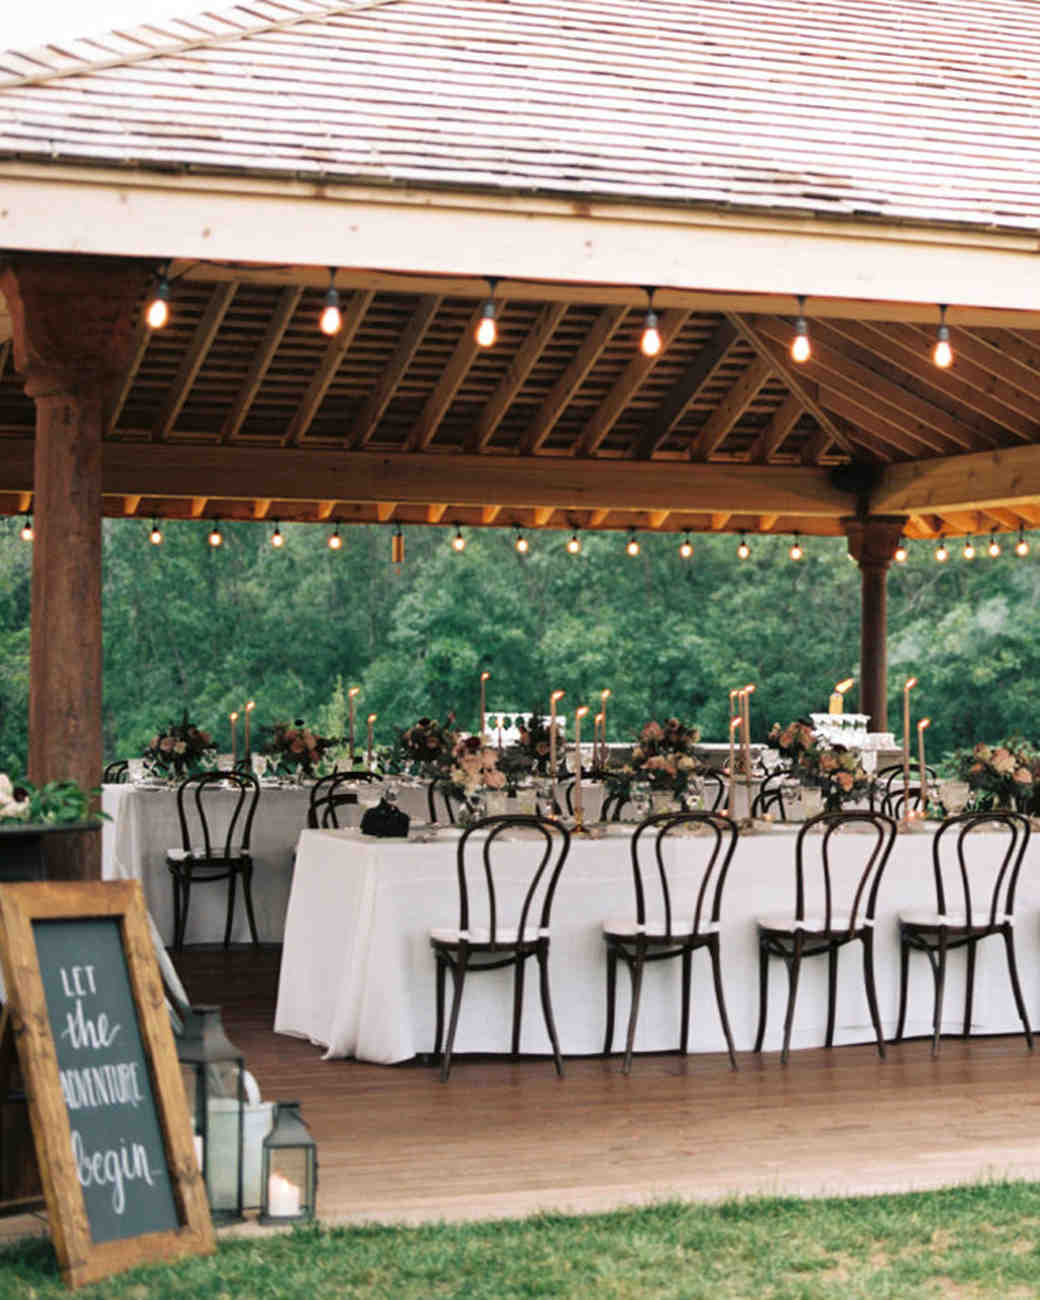 airbnb-wedding-venues-coxsackie-new-york-intro-1218_vert.jpg